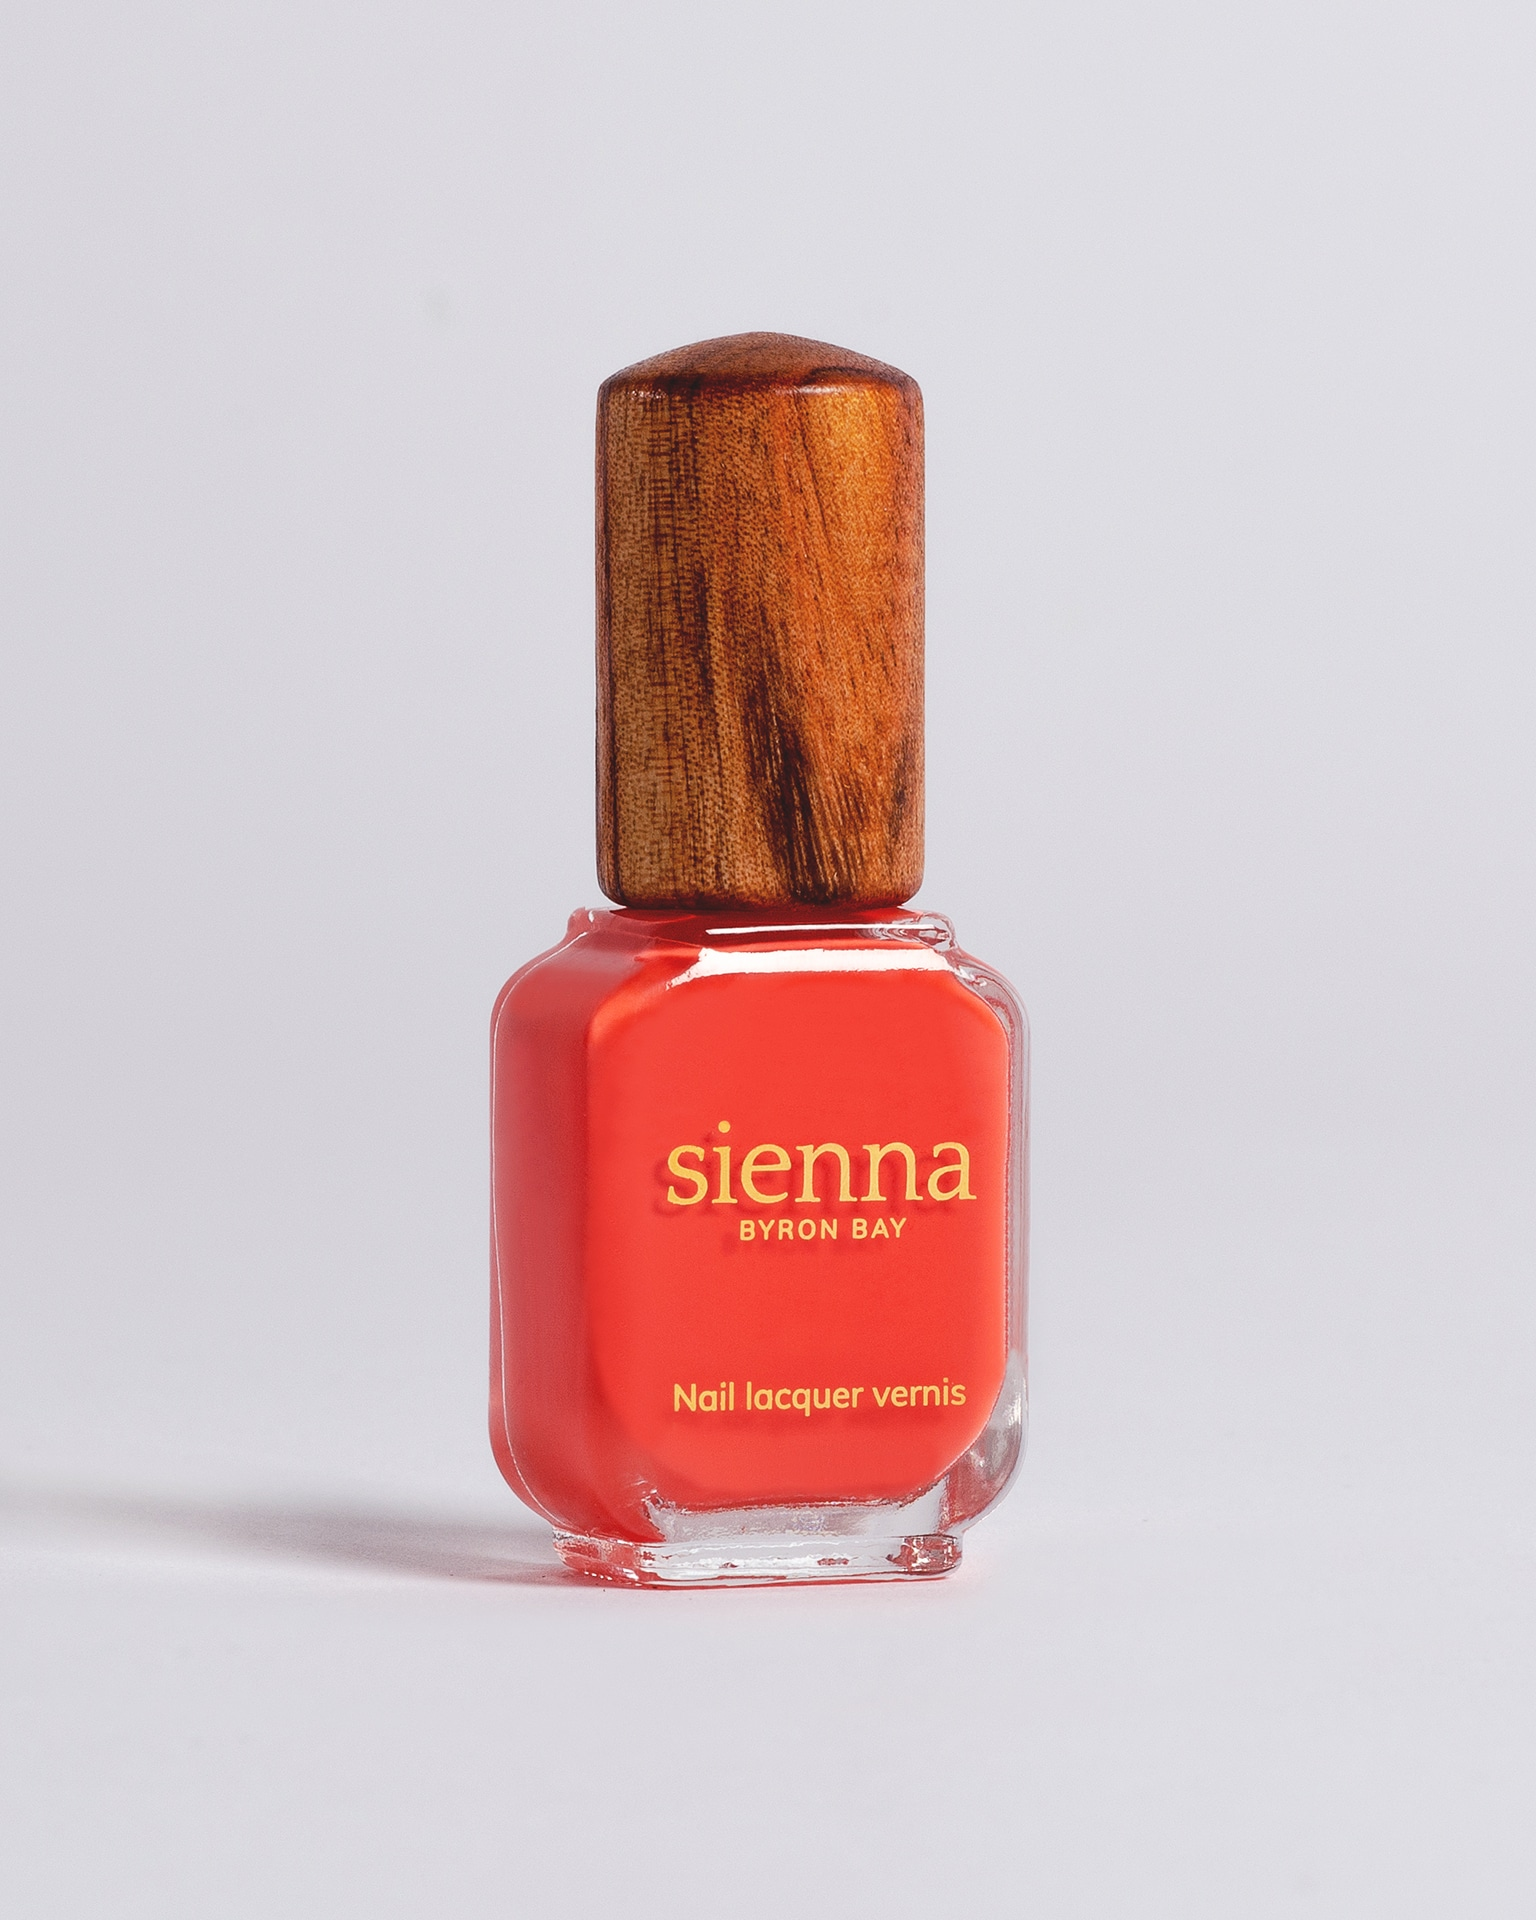 warm red nail polish bottle with timber cap by sienna